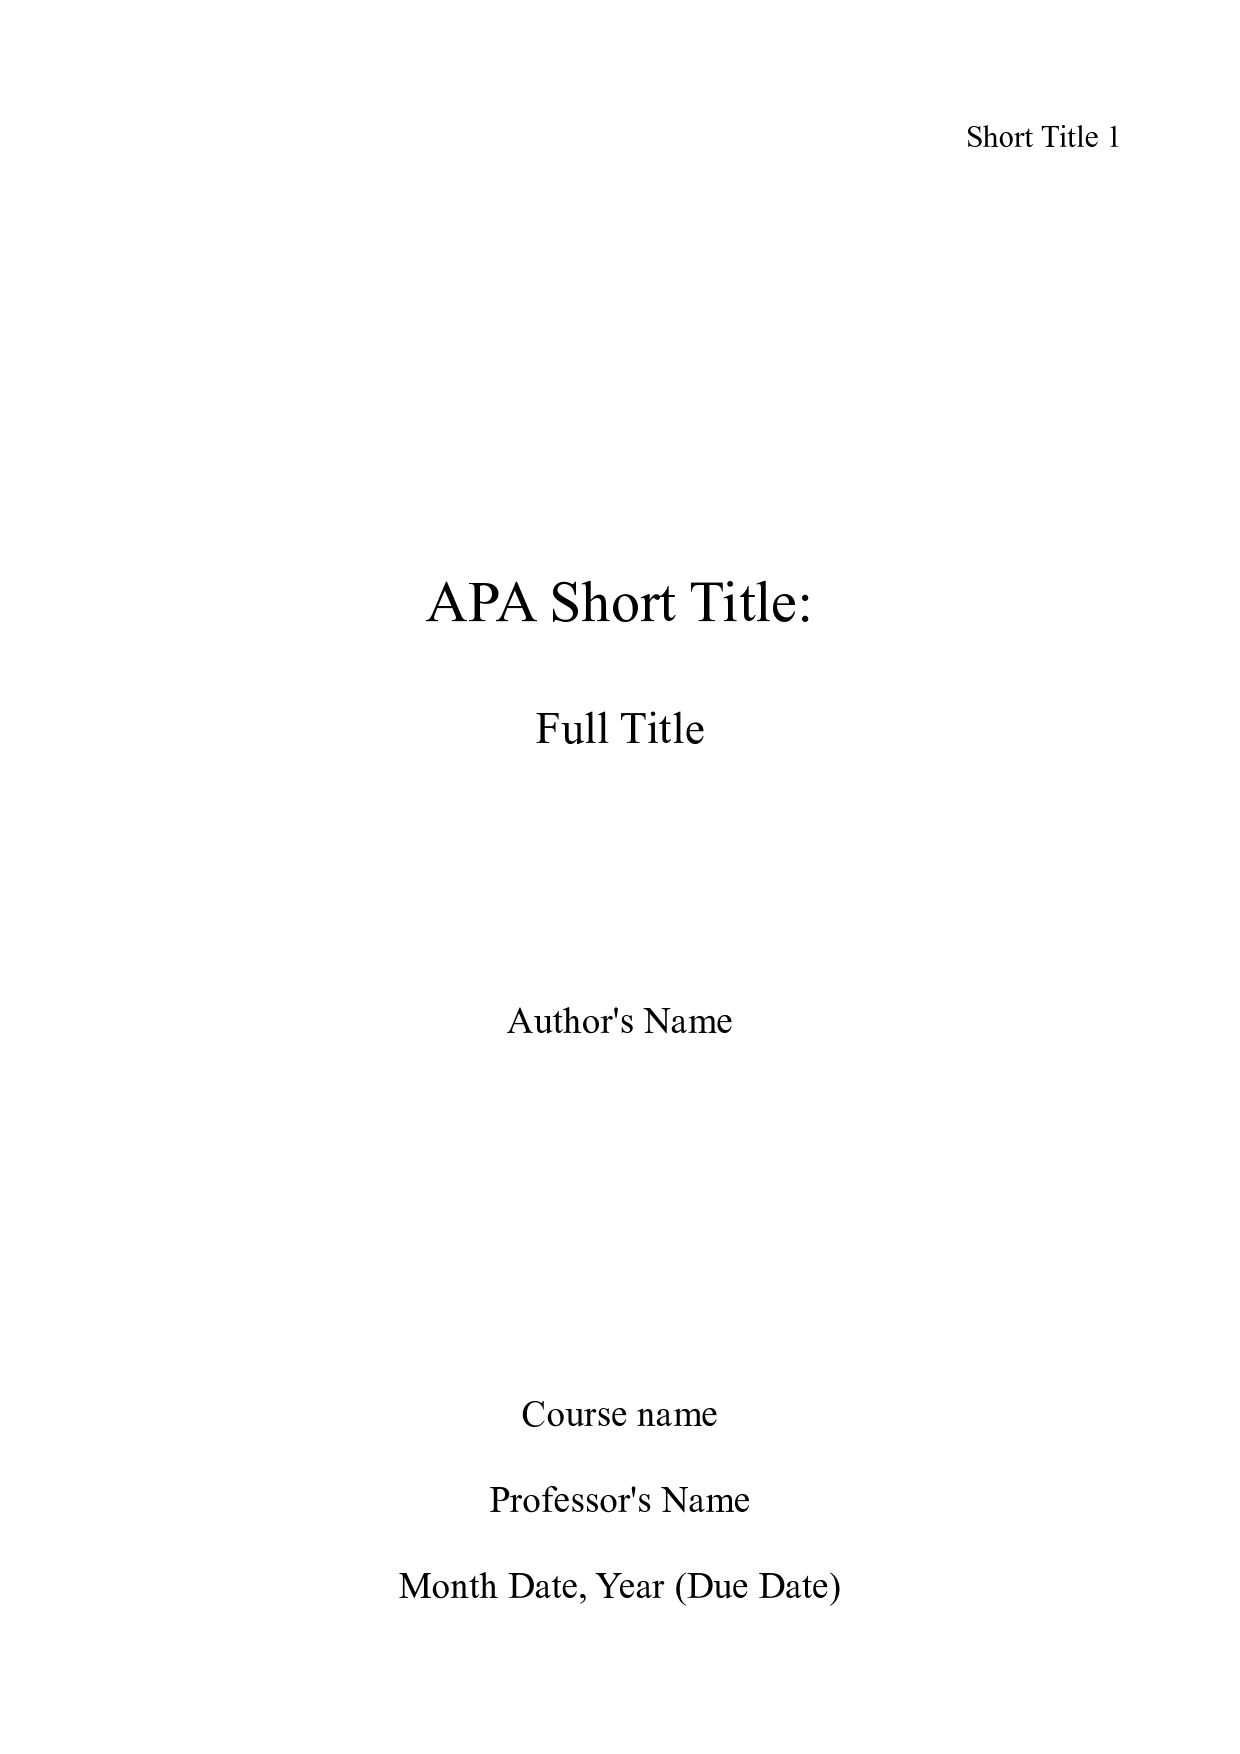 Paper Vs Essay Picture Of Of An Apa Title Page  Apa Essay Help With Style And Apa College Essay Vs Paper also Gay Marriage Essay Thesis Picture Of Of An Apa Title Page  Apa Essay Help With Style And  Science Essays